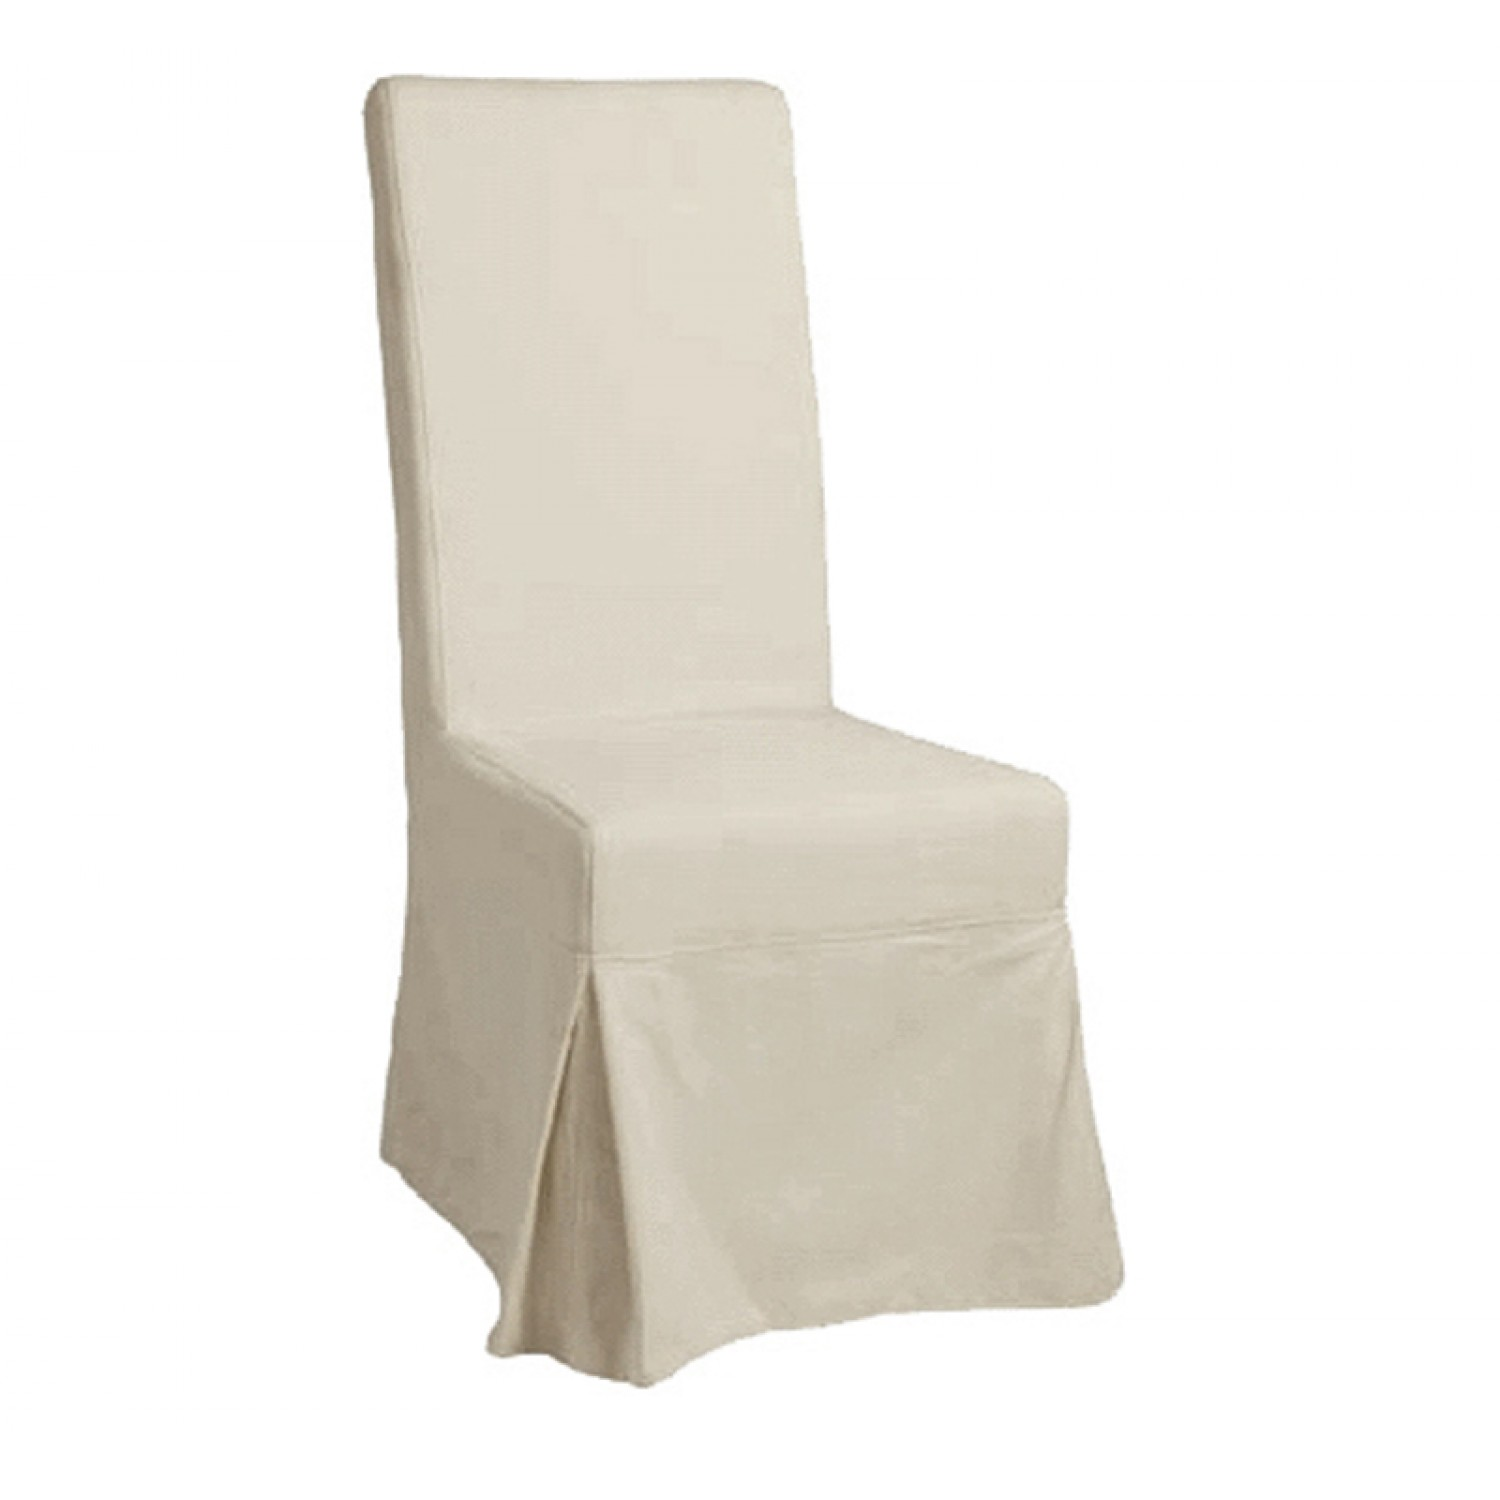 White slipcovered dining chair Photo - 1